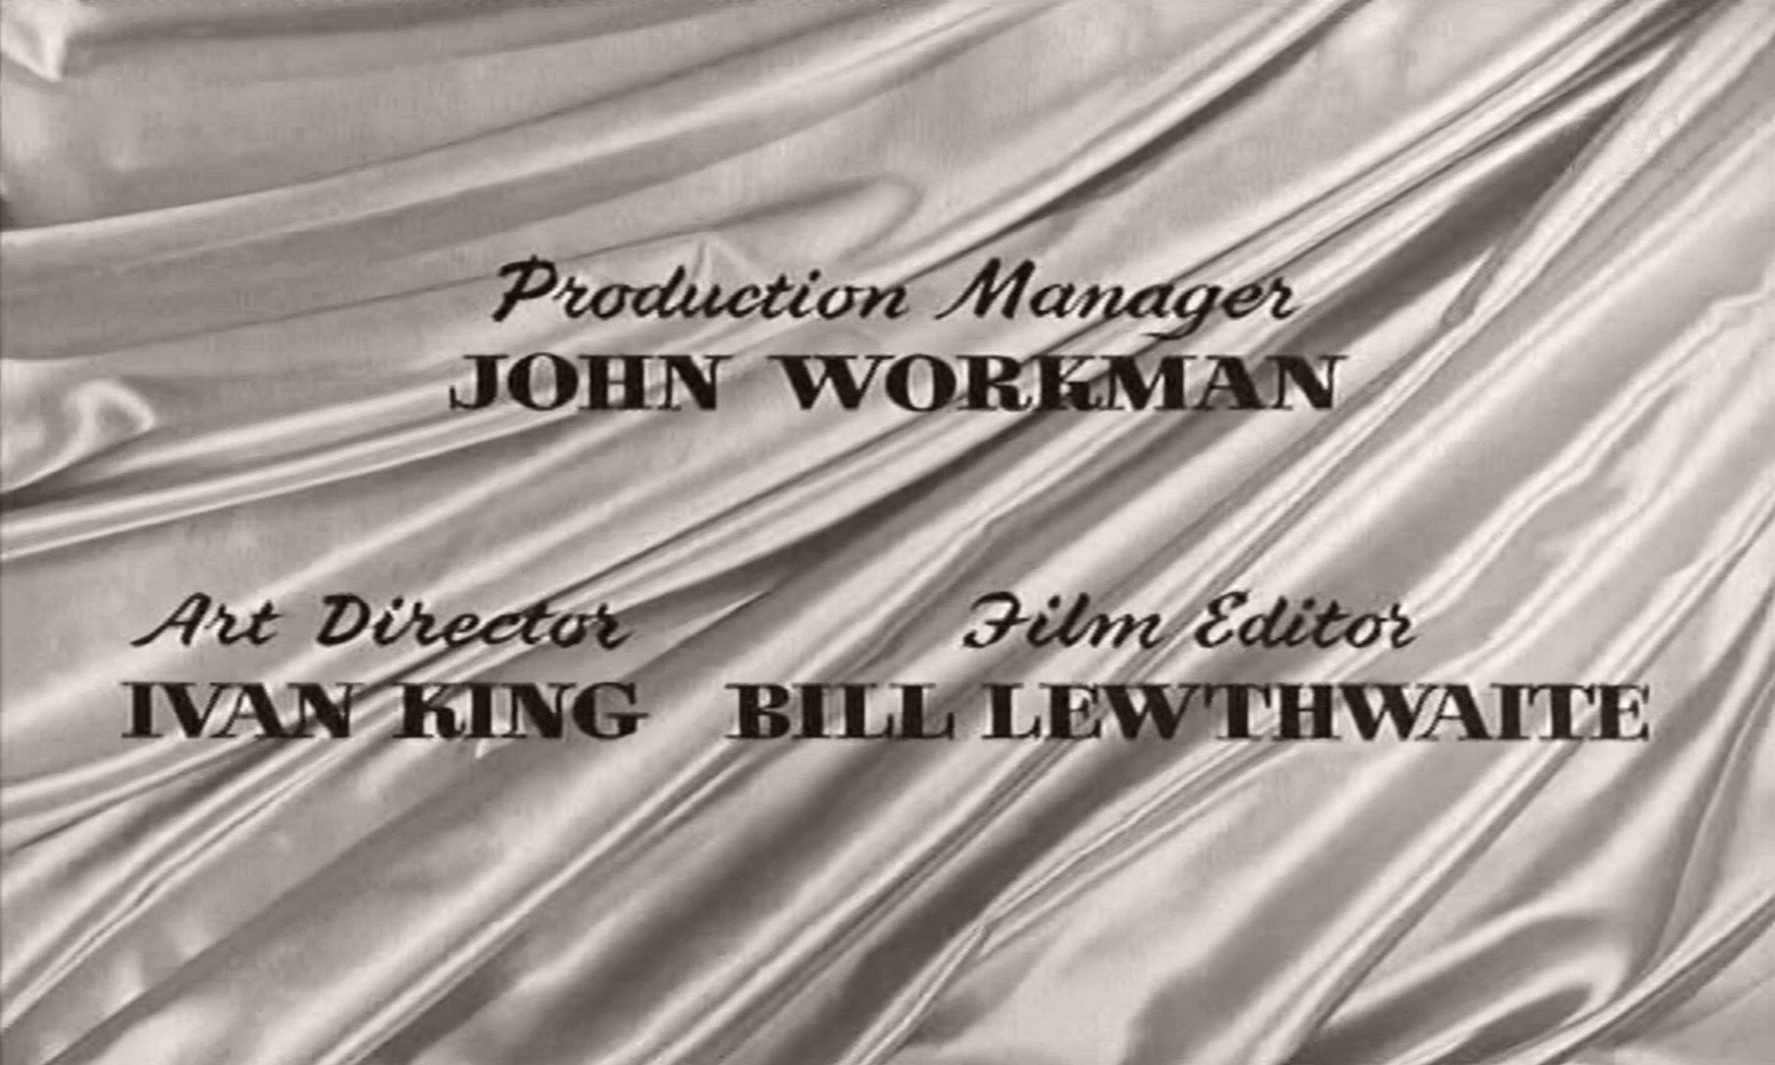 Main title from The Naked Truth (1957) (10).  Production Manager John Workman Art Director Ivan King, Film Editor Bill Lewthwaite